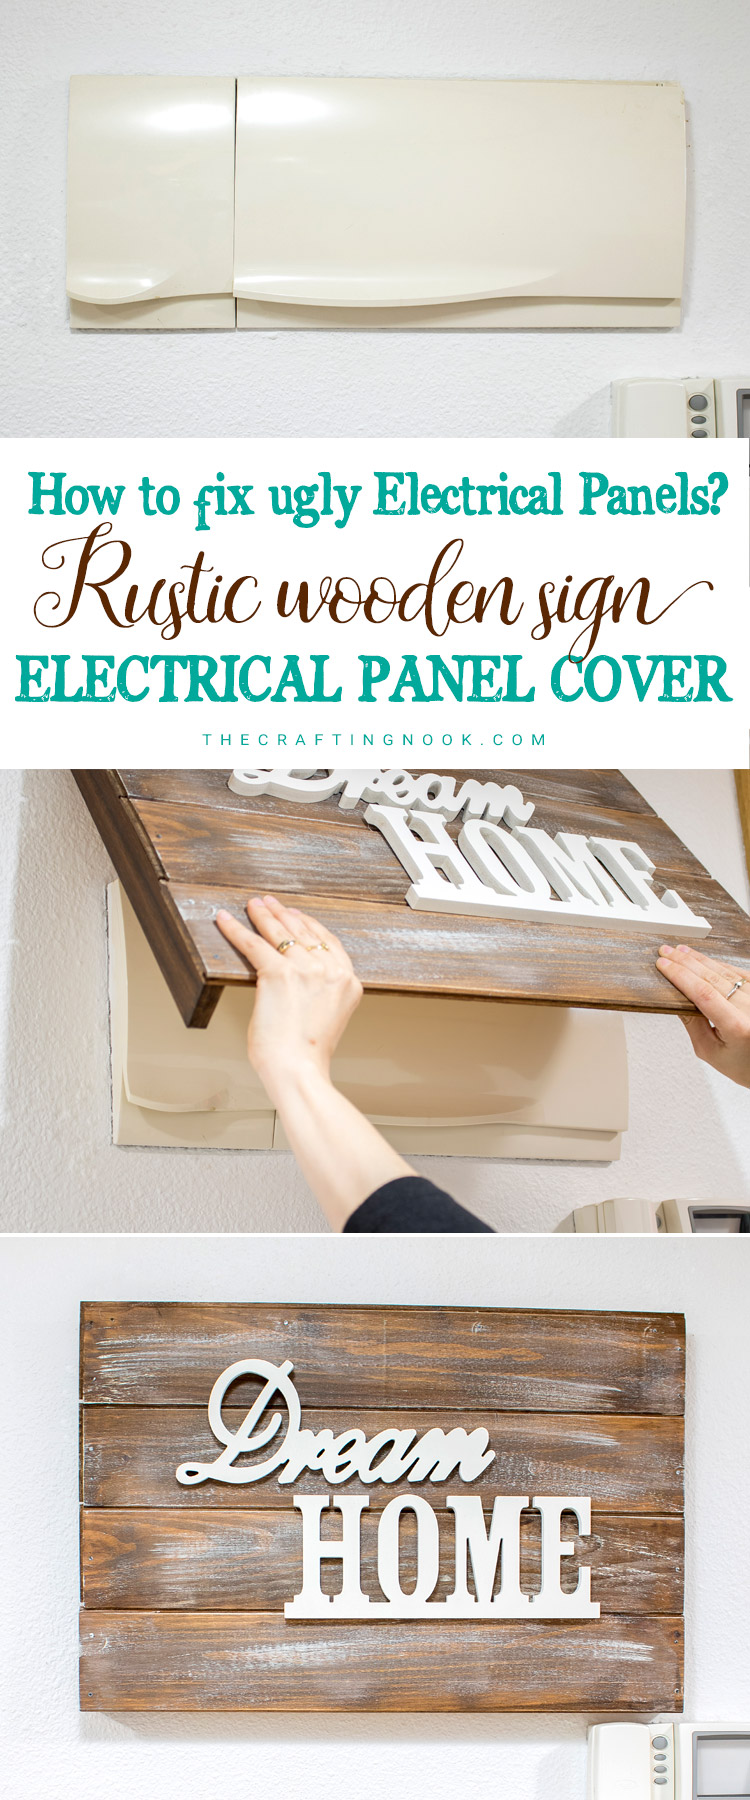 Rustic Wooden Sign Electrical Panel Cover How To The Crafting Nook